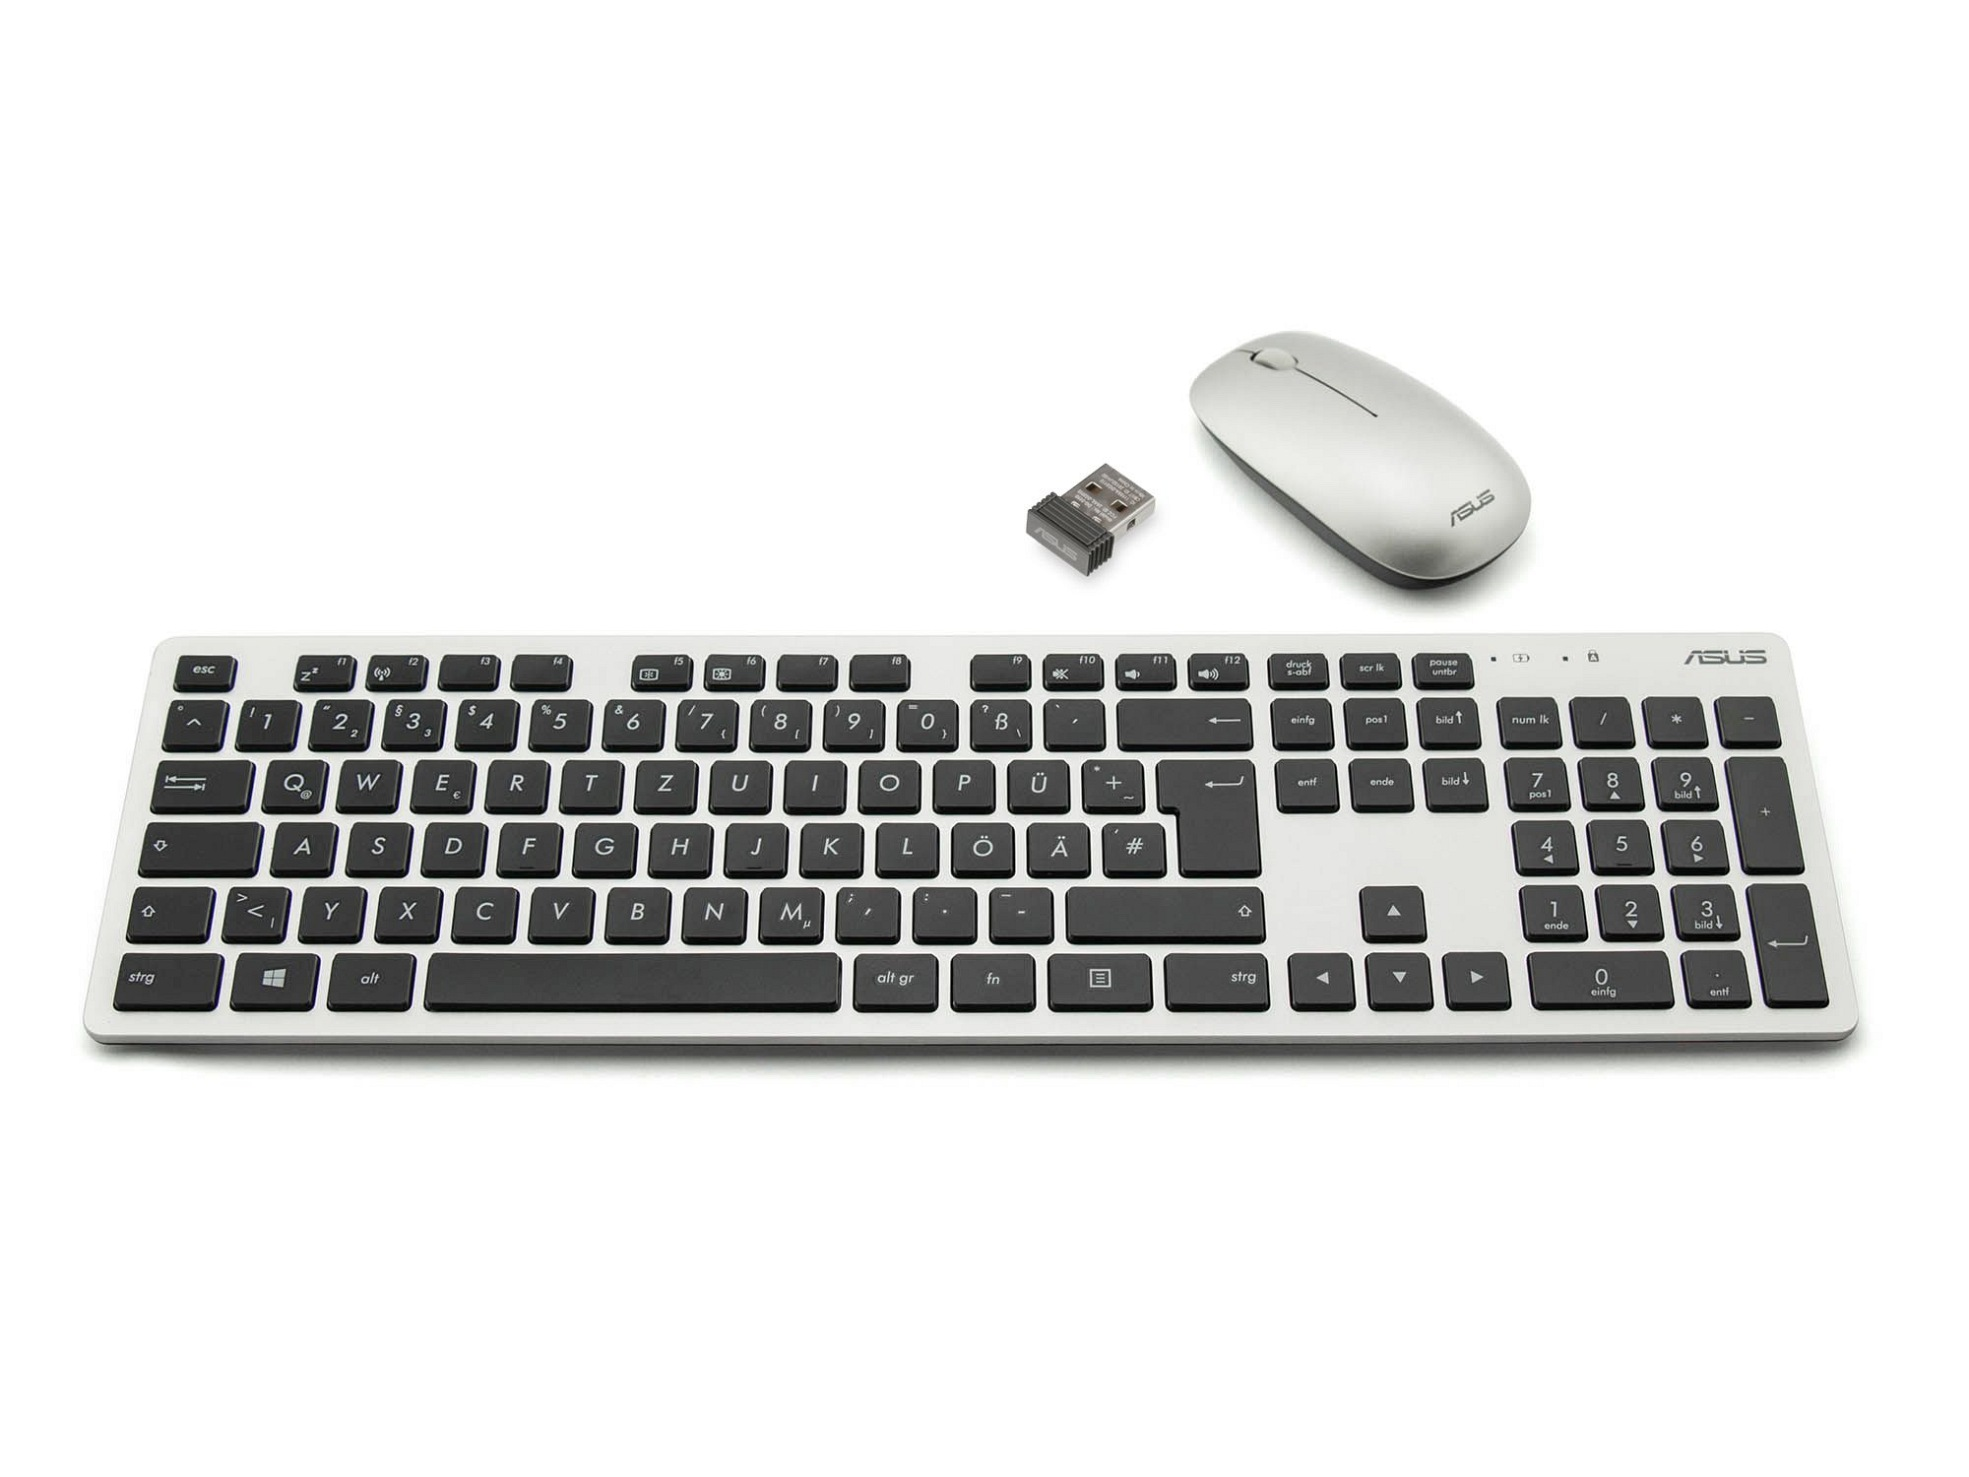 BKZ240 Wireless Tastatur/Maus Kit (DE)